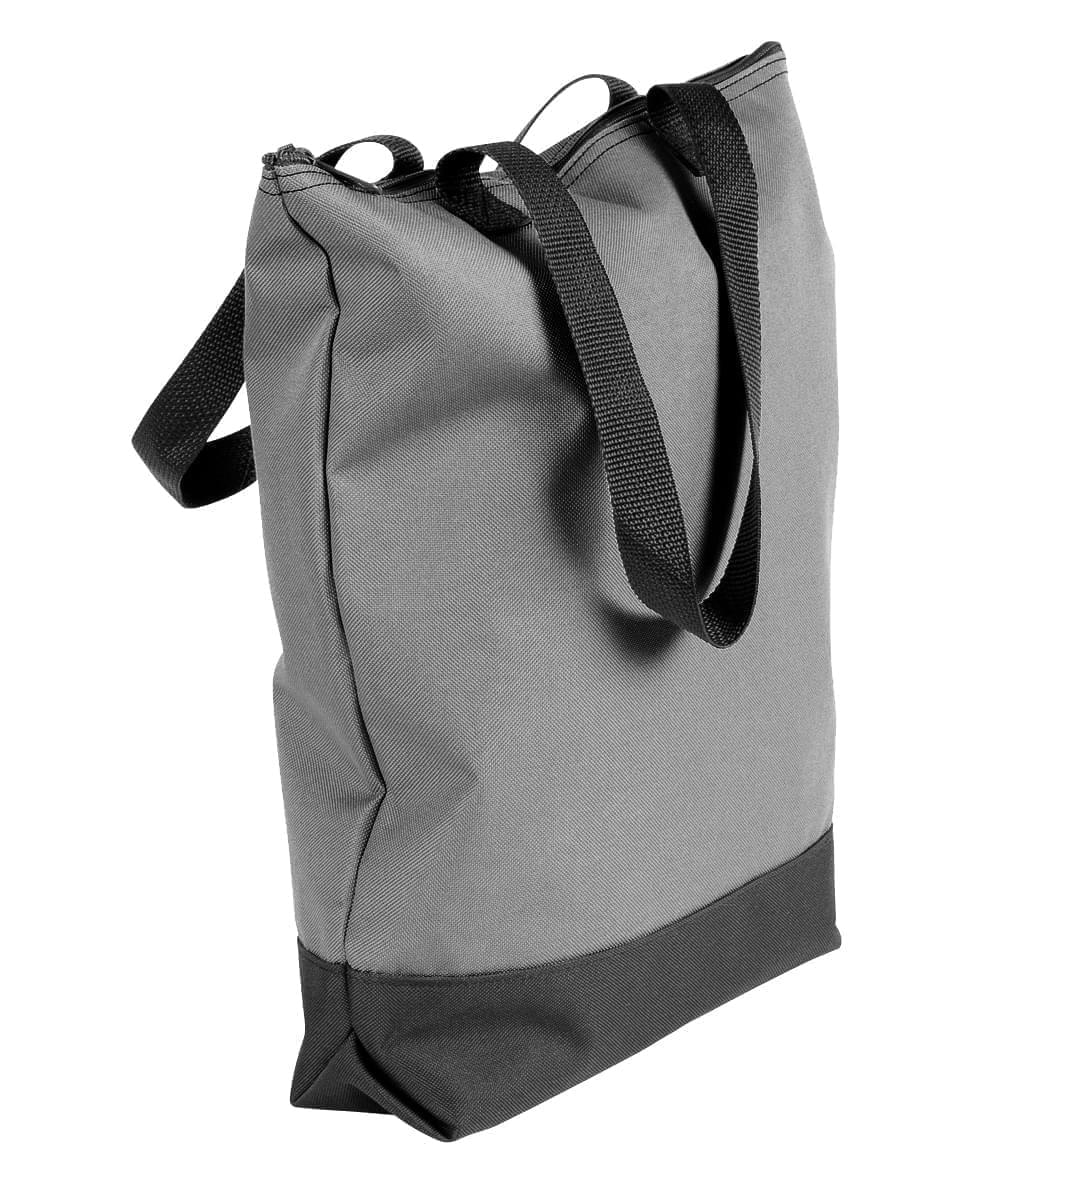 USA Made Poly Notebook Tote Bags, Grey-Black, 1AAMX1UA1R